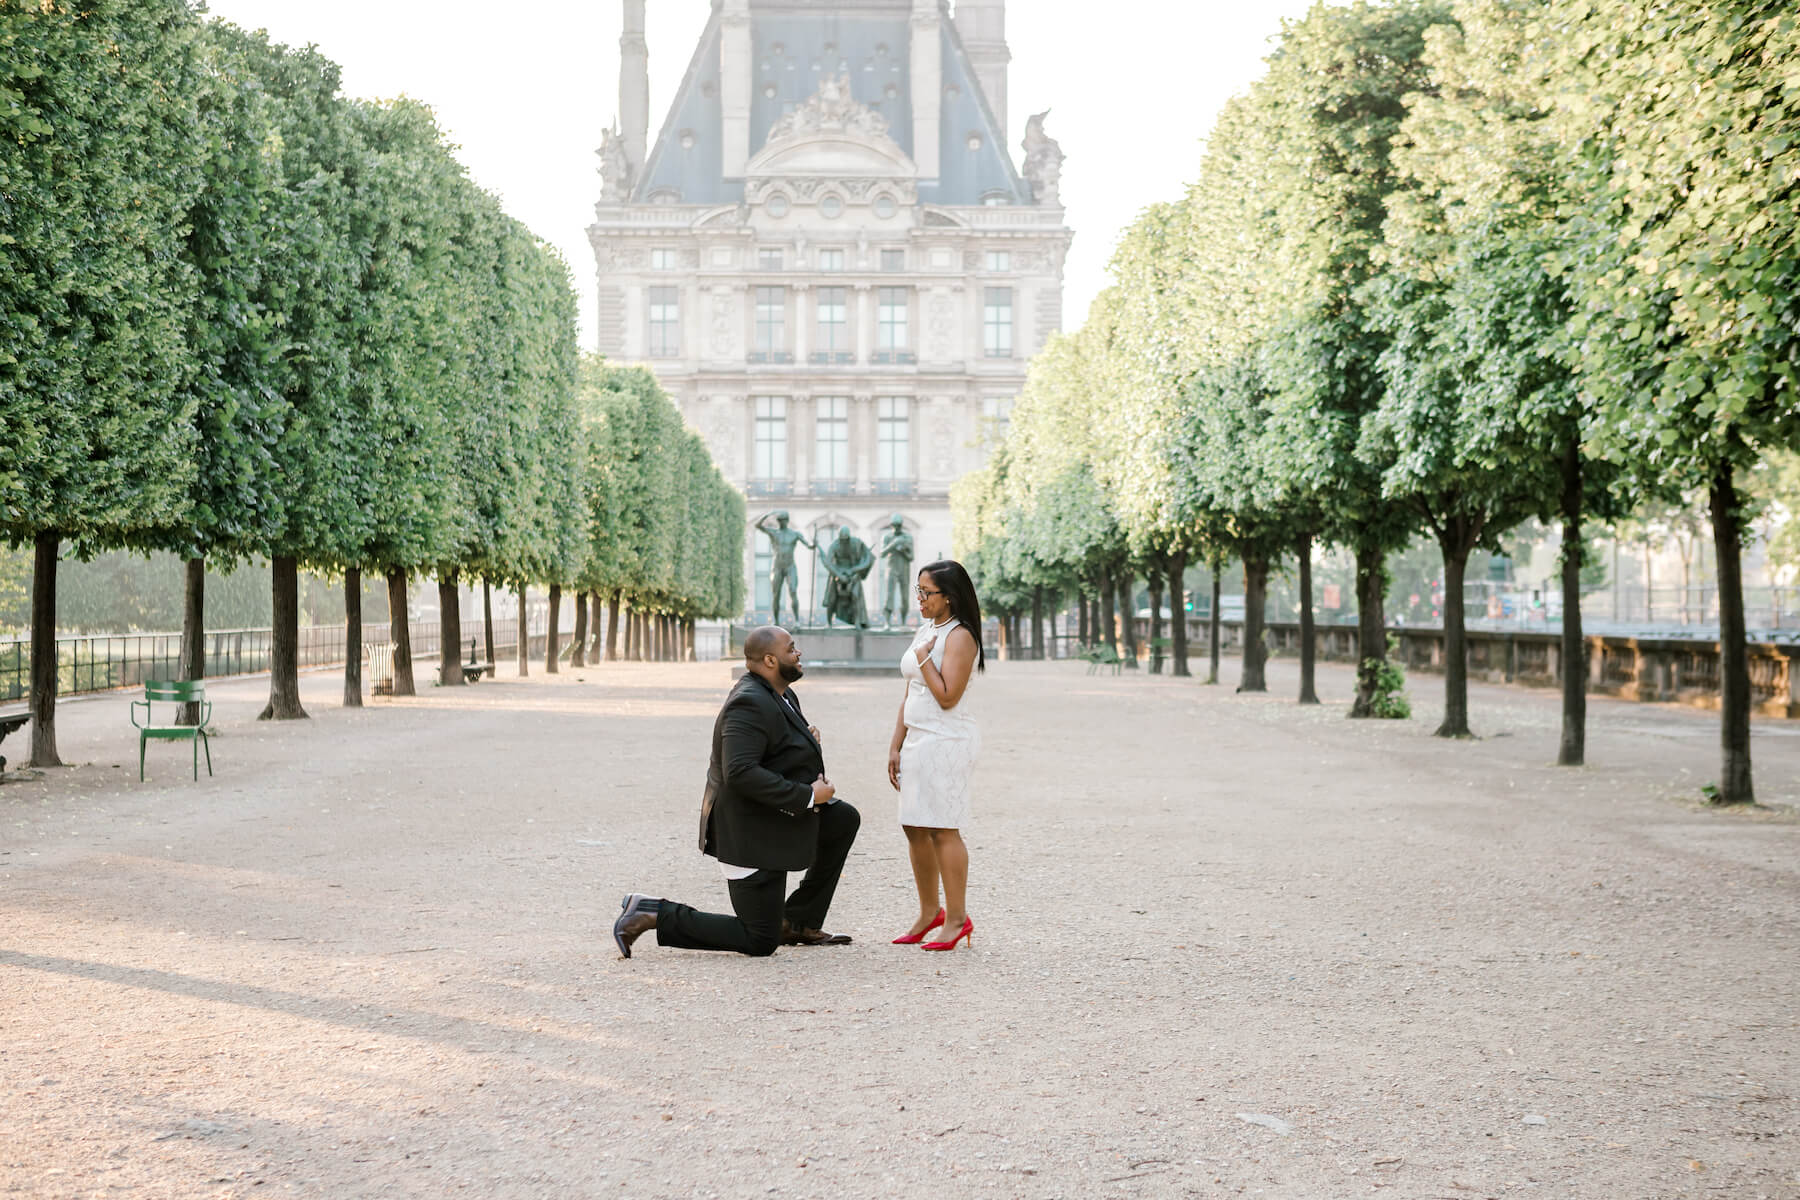 A man proposing on the Louvre grounds, in Paris, France